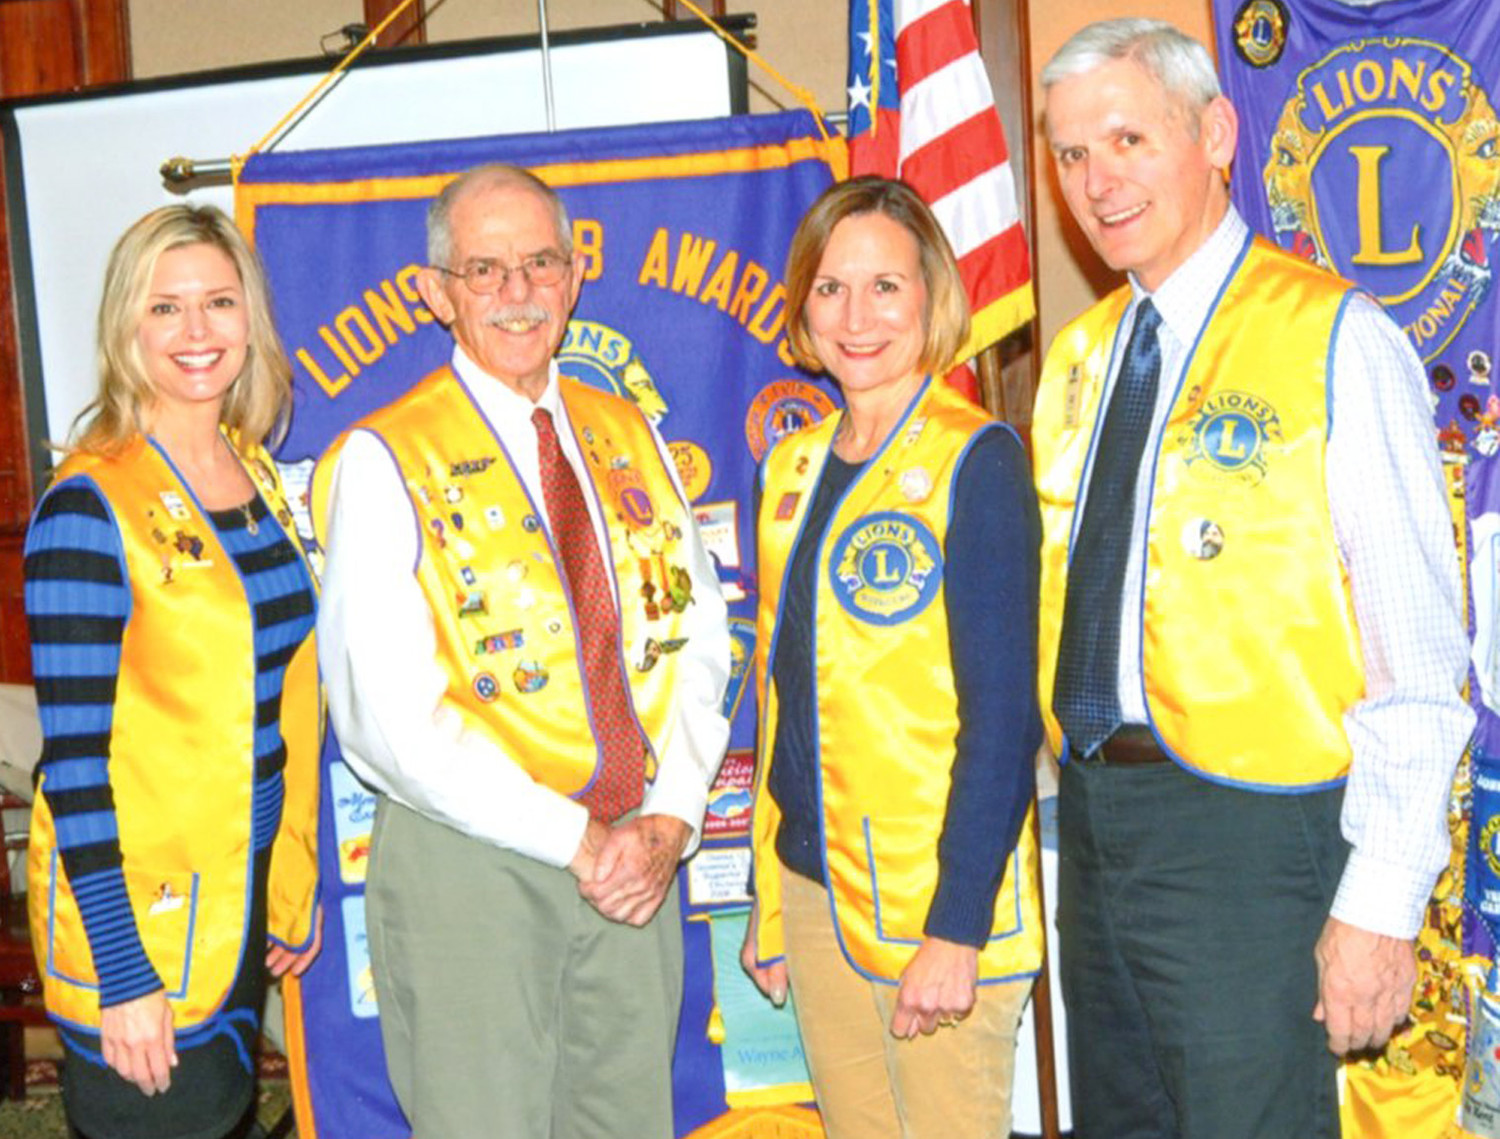 The Charles H. Coolidge Medal of Honor Heritage being built in Chattanooga was the program topic this week for the Lions Club of Cleveland meeting. The stories of more than 3,400 recipients of the Medal of Honor, including Cleveland's Paul Huff, are to be included at the center. From left are Cleveland Lion President Kim Ledford, Jim Wade with the Signal Mountain Lions Club, Cleveland Lion Lou Horner, and PDG Lion Jerry Pala with the Signal Mountain Lions Club. Pala was the guest speaker.